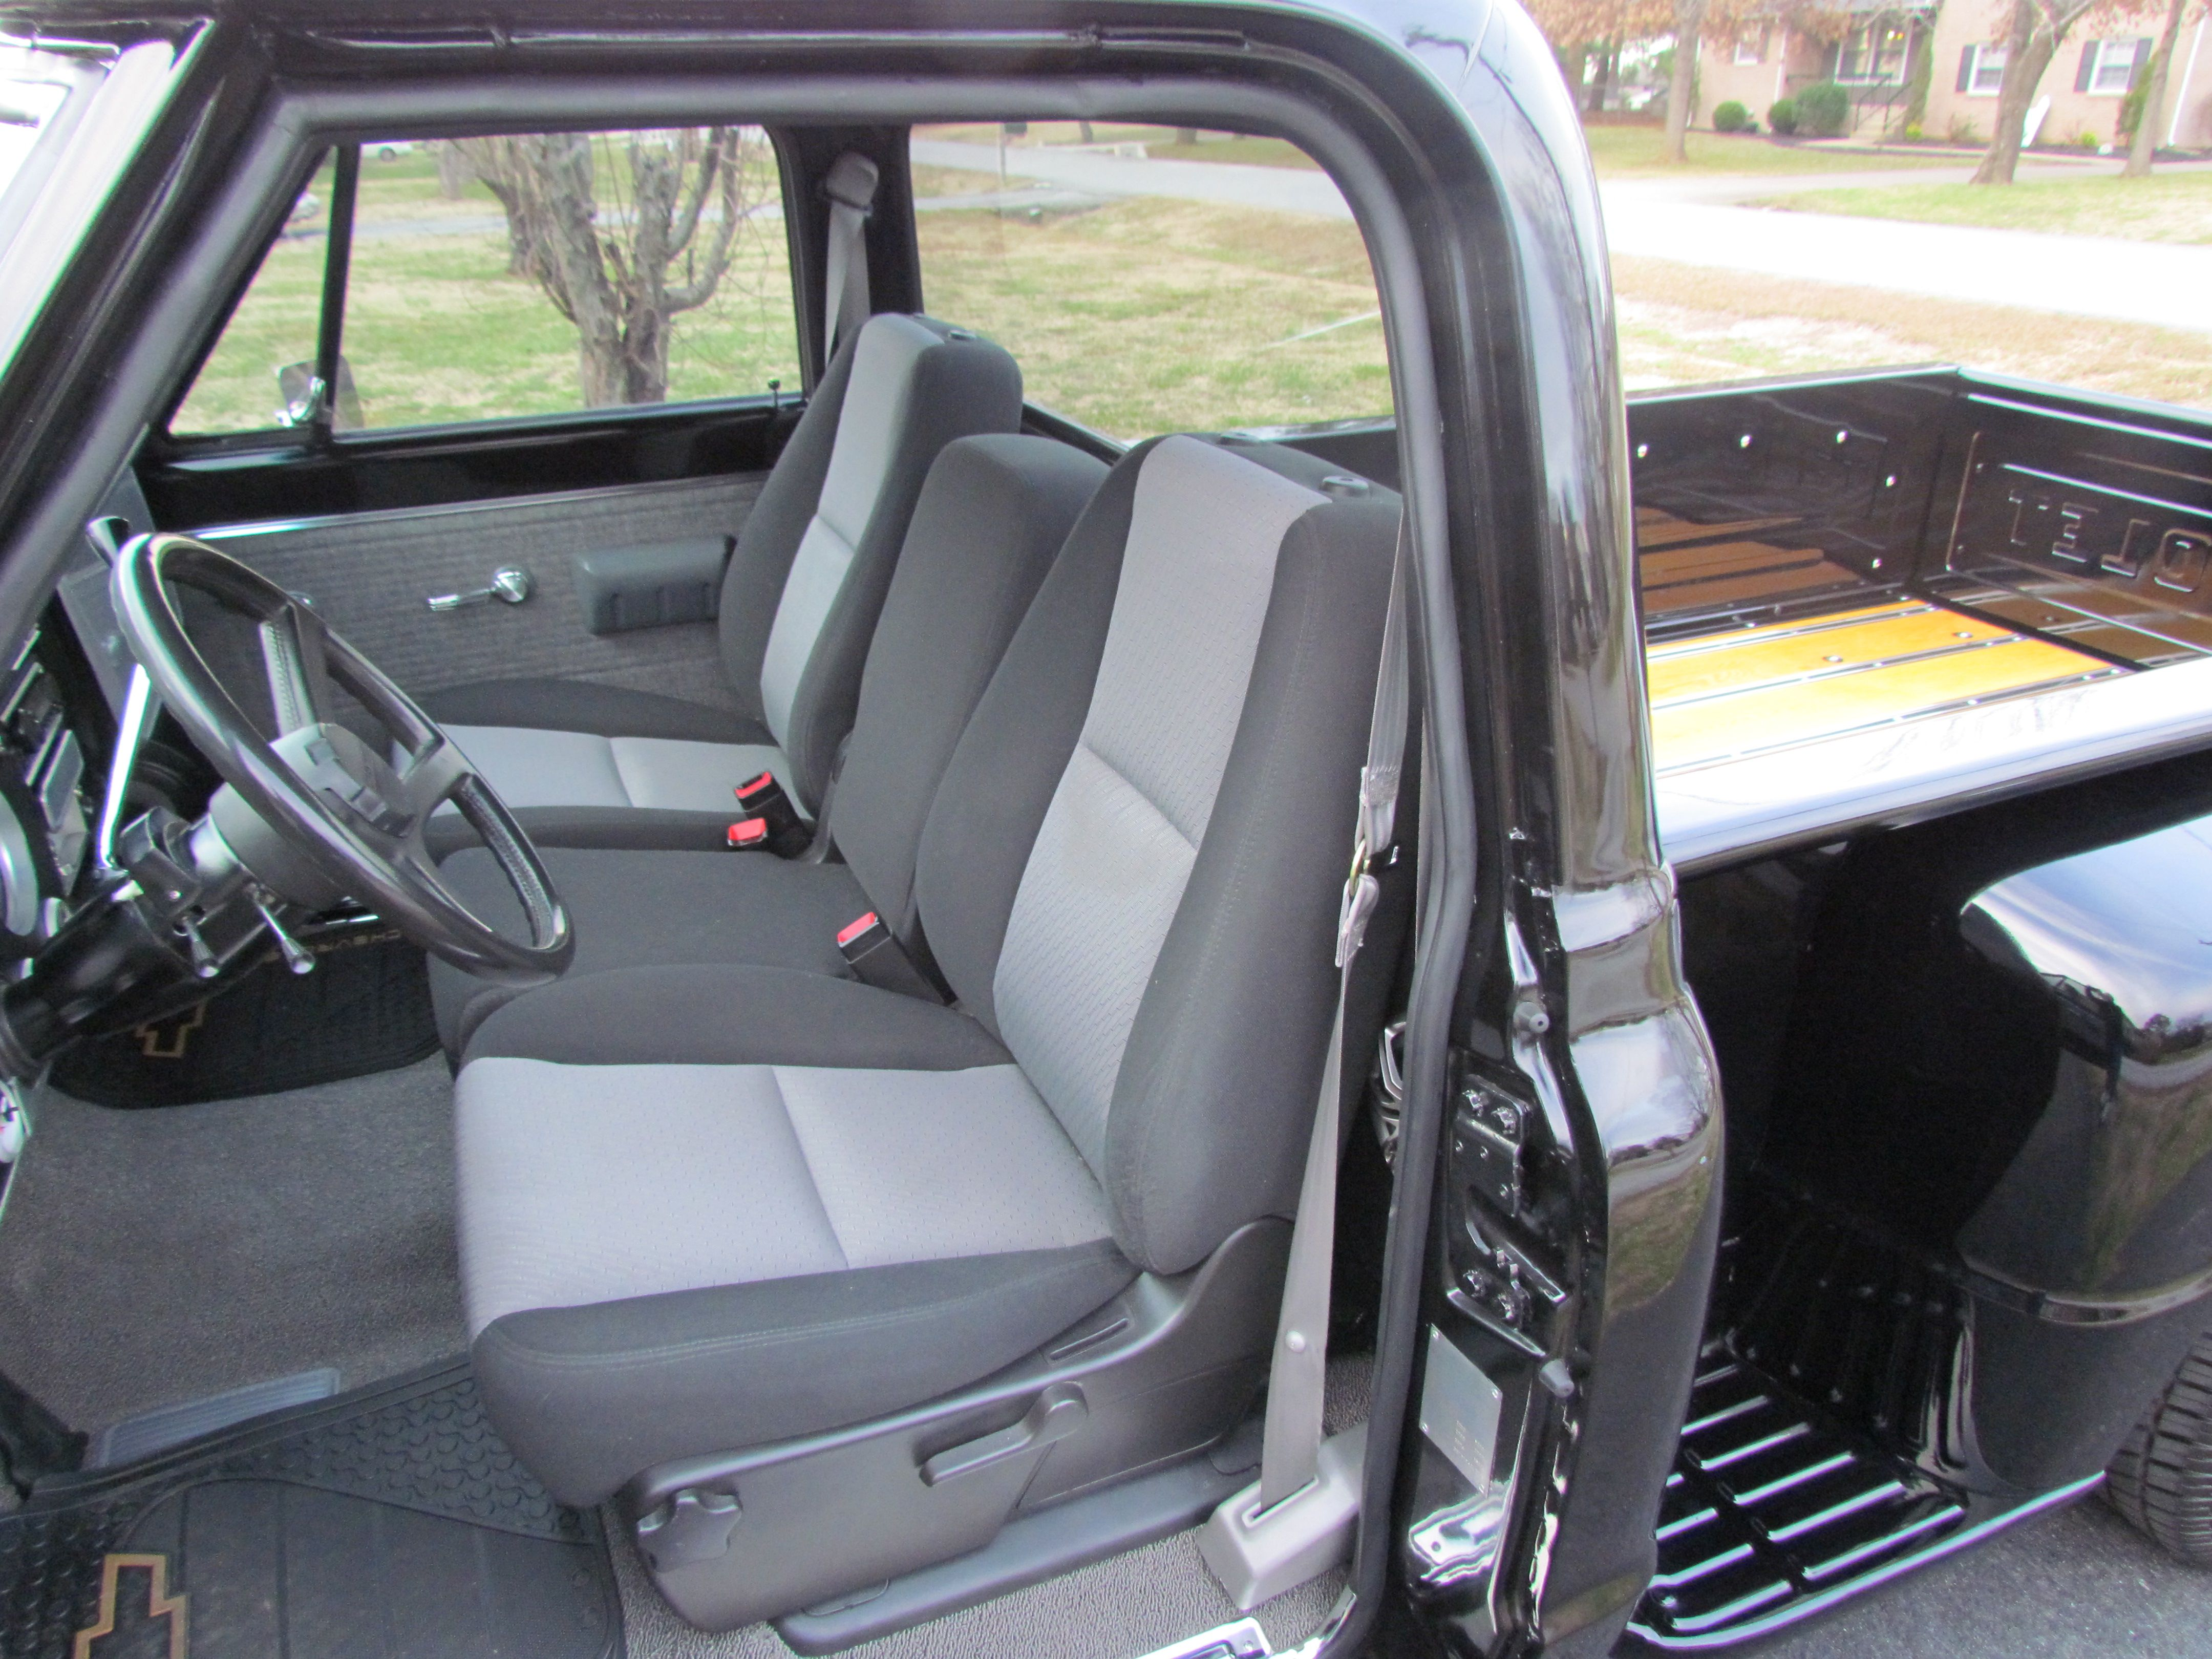 upholstery rick interior trucks seat covers truck custom departments chevy door completed panels red s